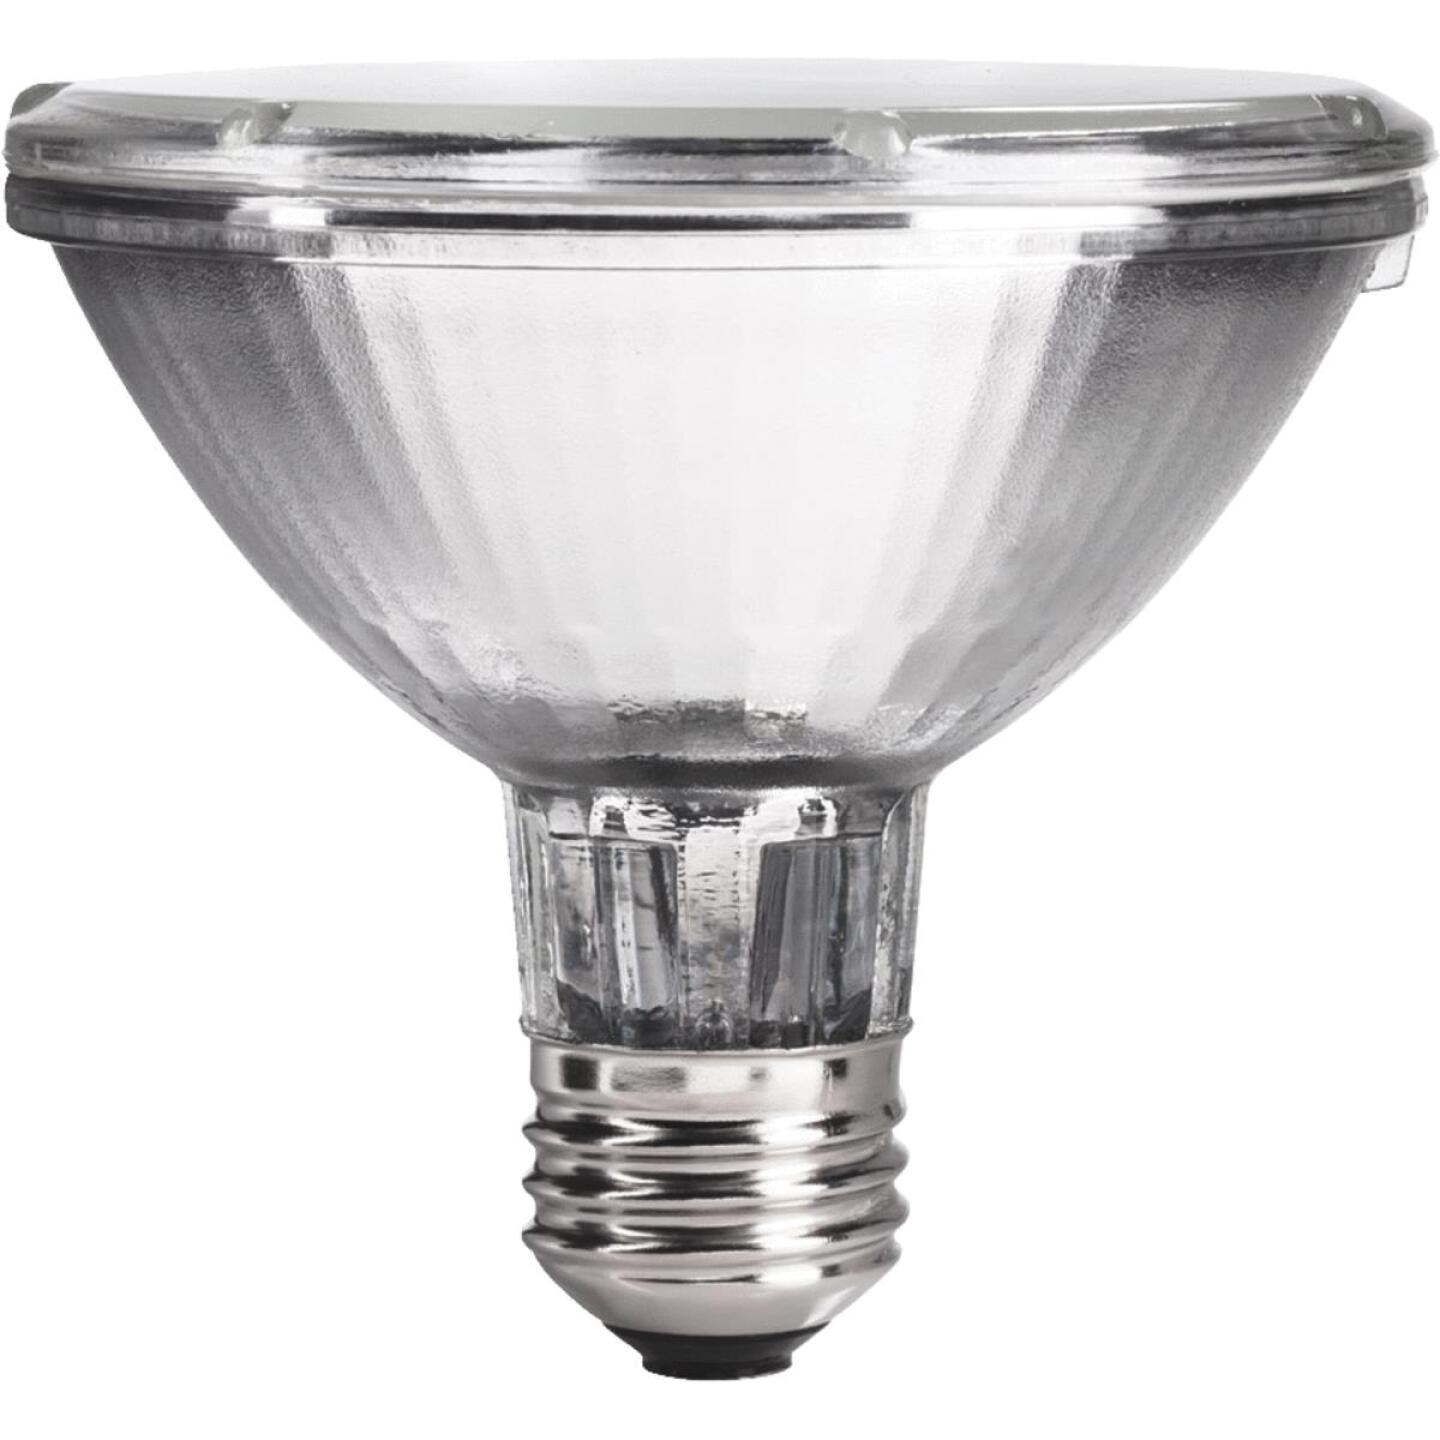 Philips EcoVantage 75W Equivalent Clear Medium Base PAR30S Halogen Spotlight Light Bulb  Image 1